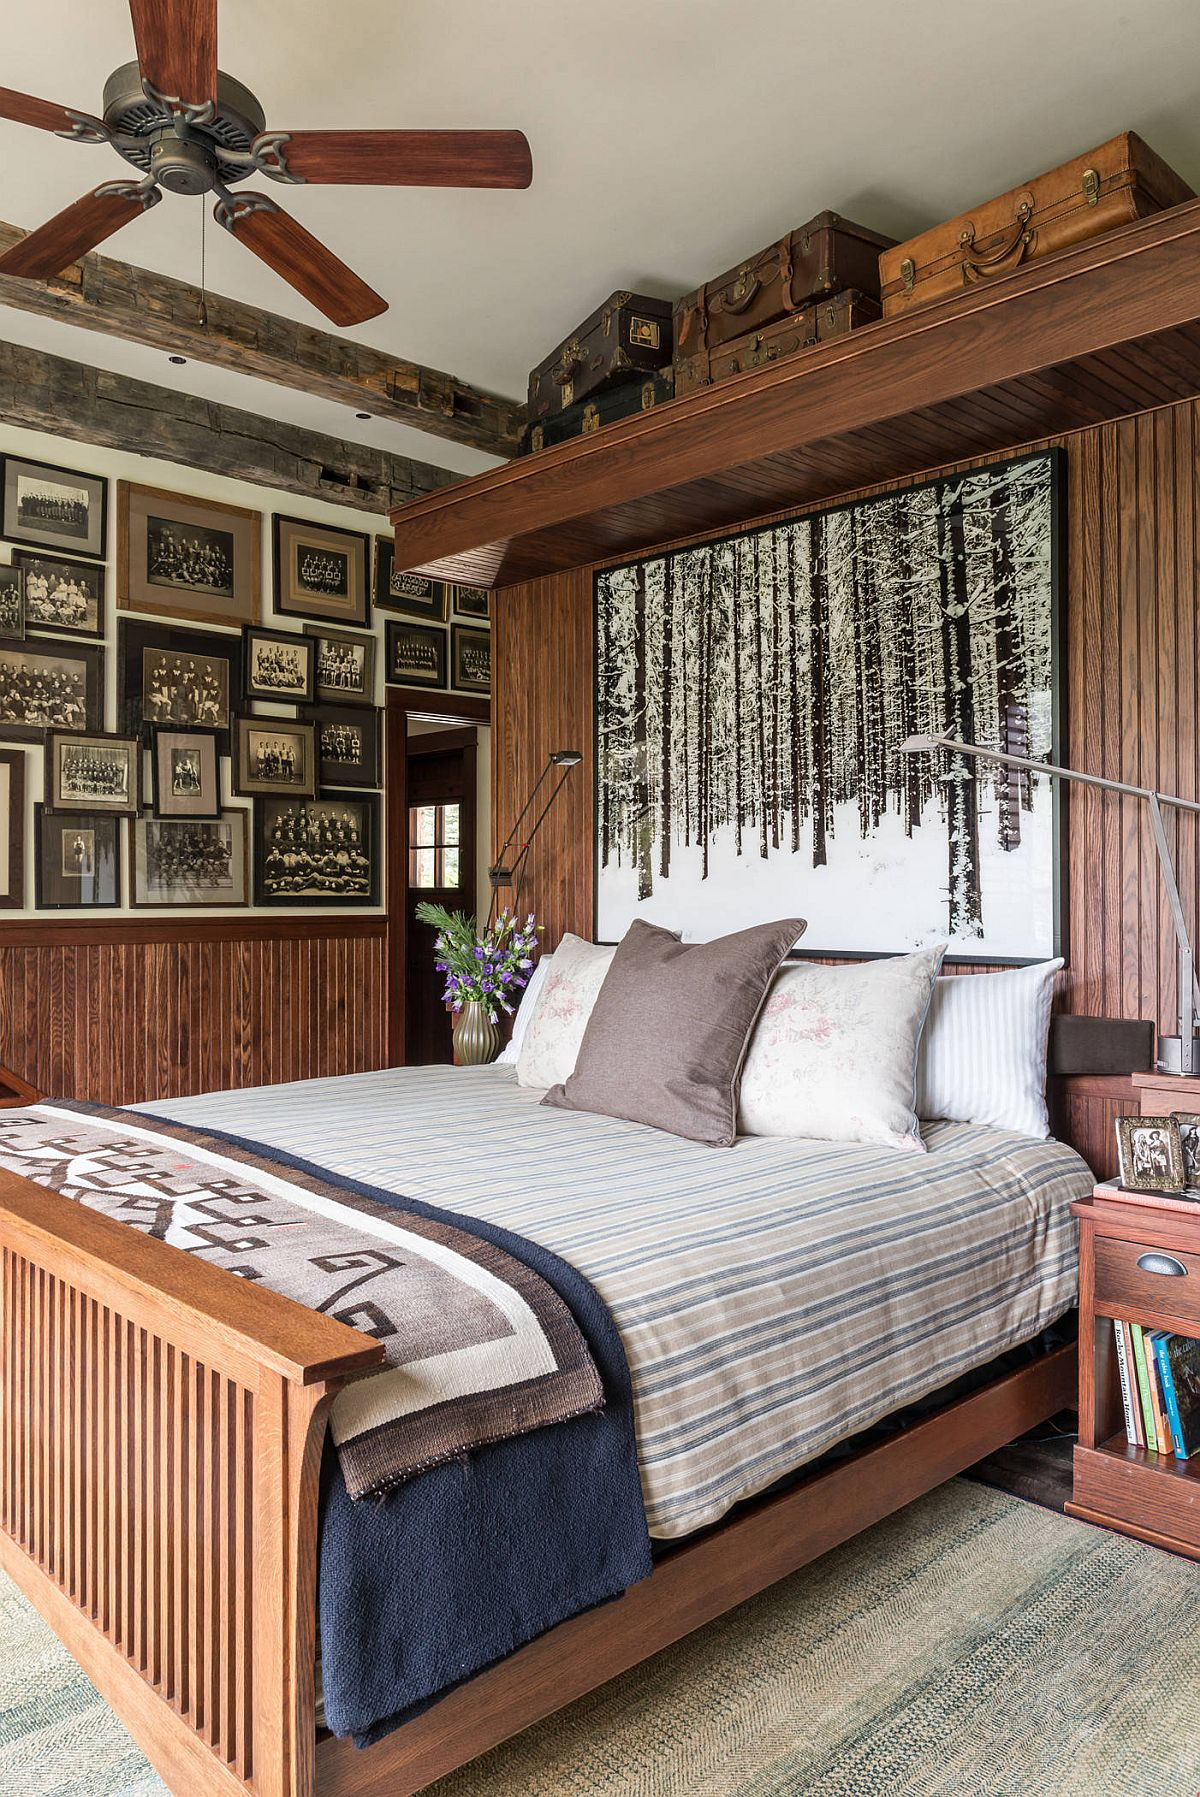 Gallery-wall-in-this-cabin-style-bedroom-seems-to-take-you-down-a-trip-in-memory-lane-44482